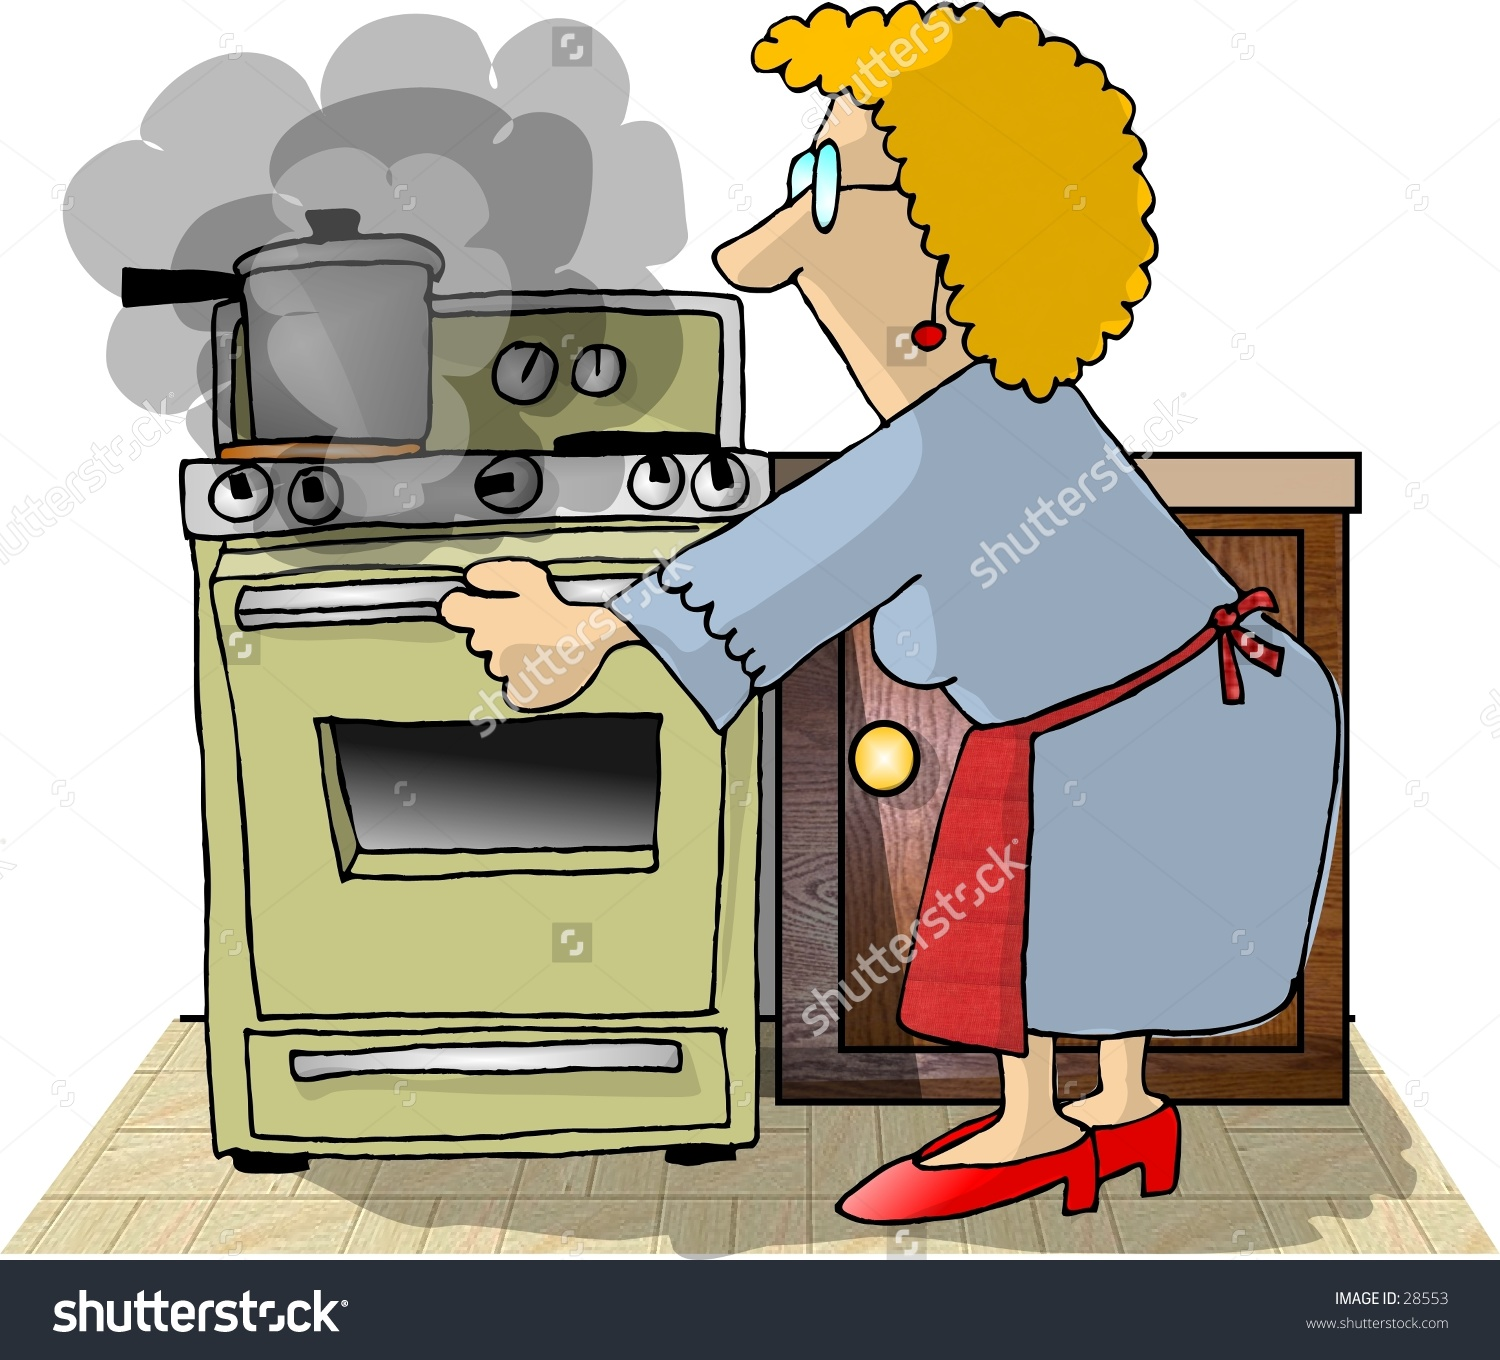 Clipart Illustration Woman Opening Oven Door Stock Illustration.